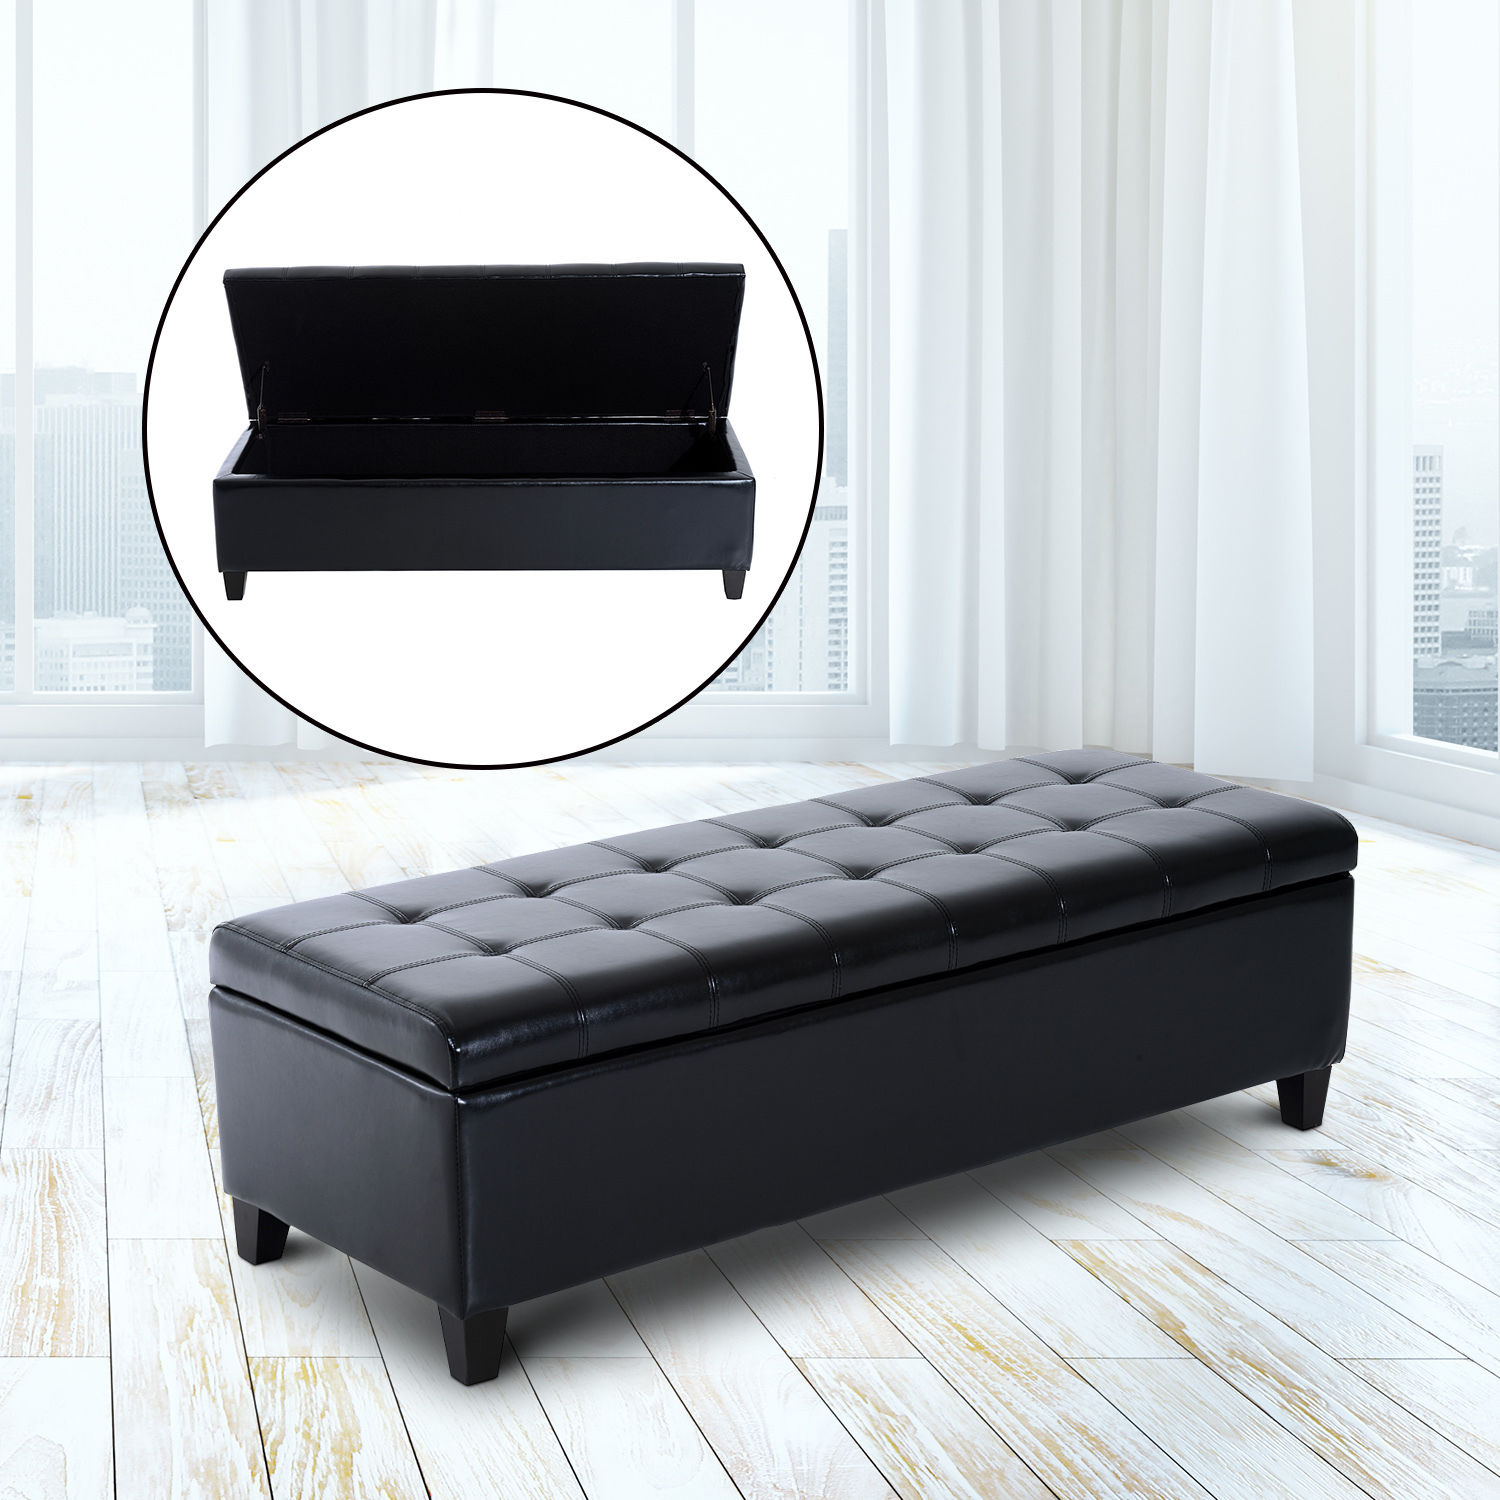 Peachy Details About Homcom Black Storage Ottoman Bench 3 Seater Pu Leather Furniture Foot Stool Andrewgaddart Wooden Chair Designs For Living Room Andrewgaddartcom